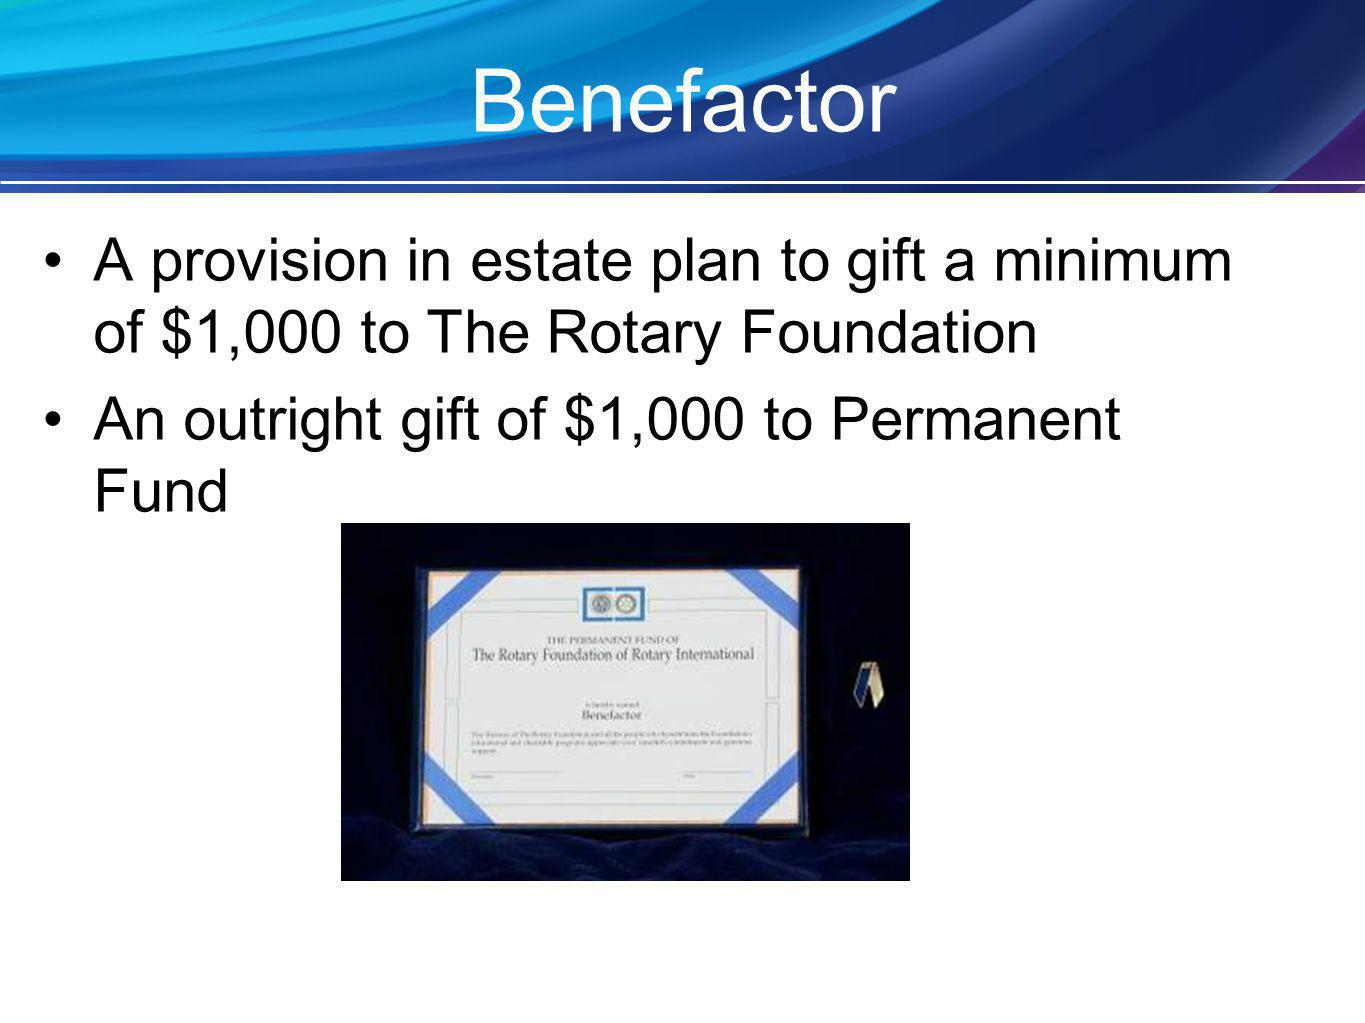 Benefactor A provision in estate plan to gift a minimum of $1,000 to The Rotary Foundation An outright gift of $1,000 to Permanent Fund